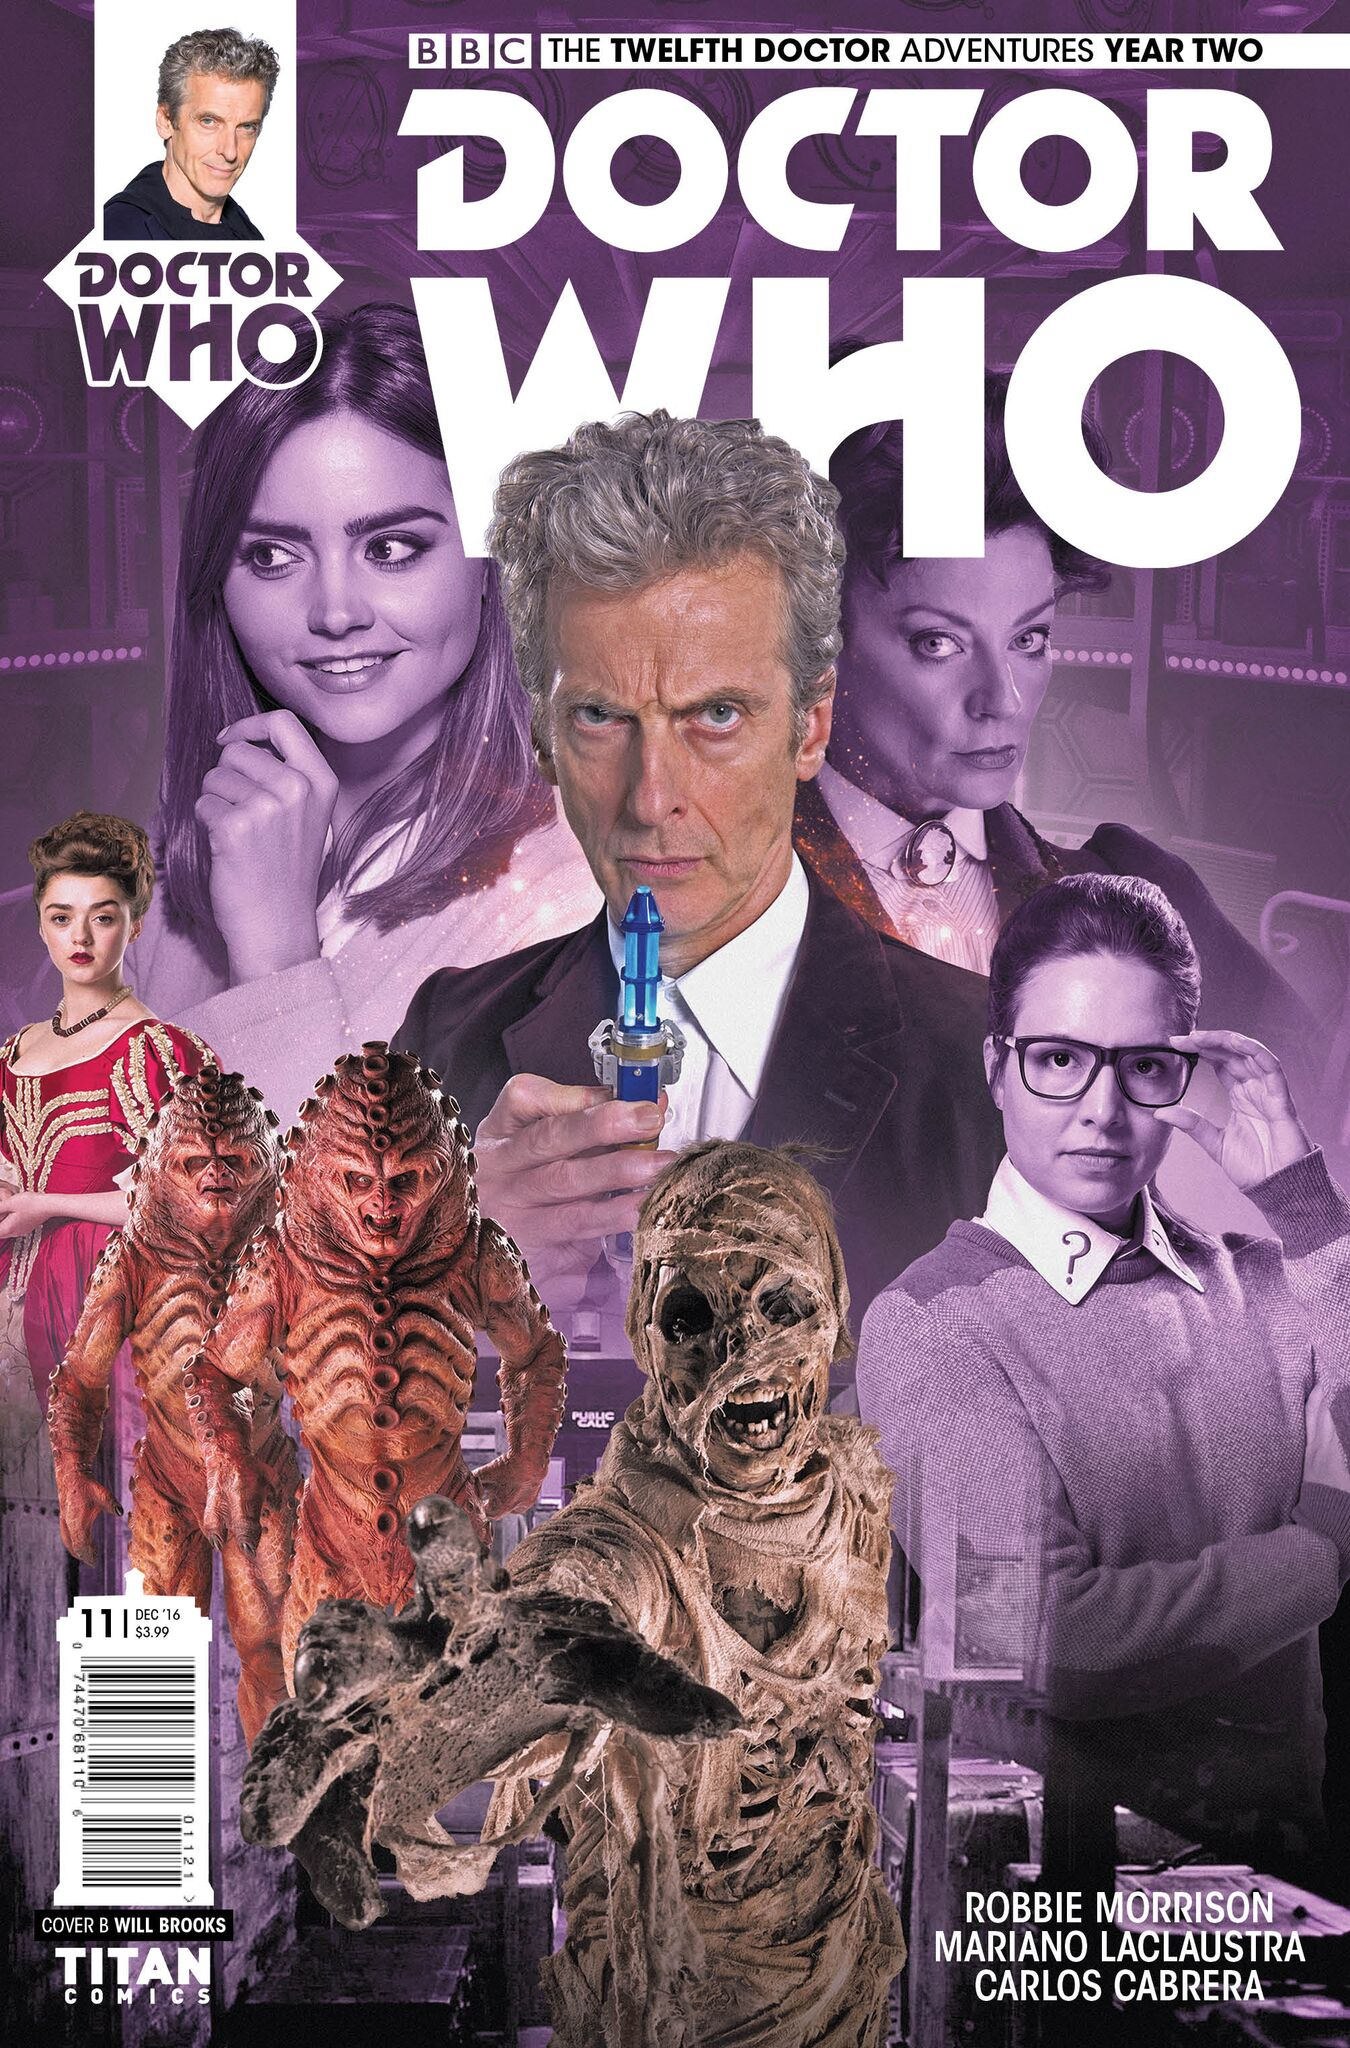 DOCTOR WHO: THE TWELFTH DOCTOR YEAR TWO #11 (Titan)